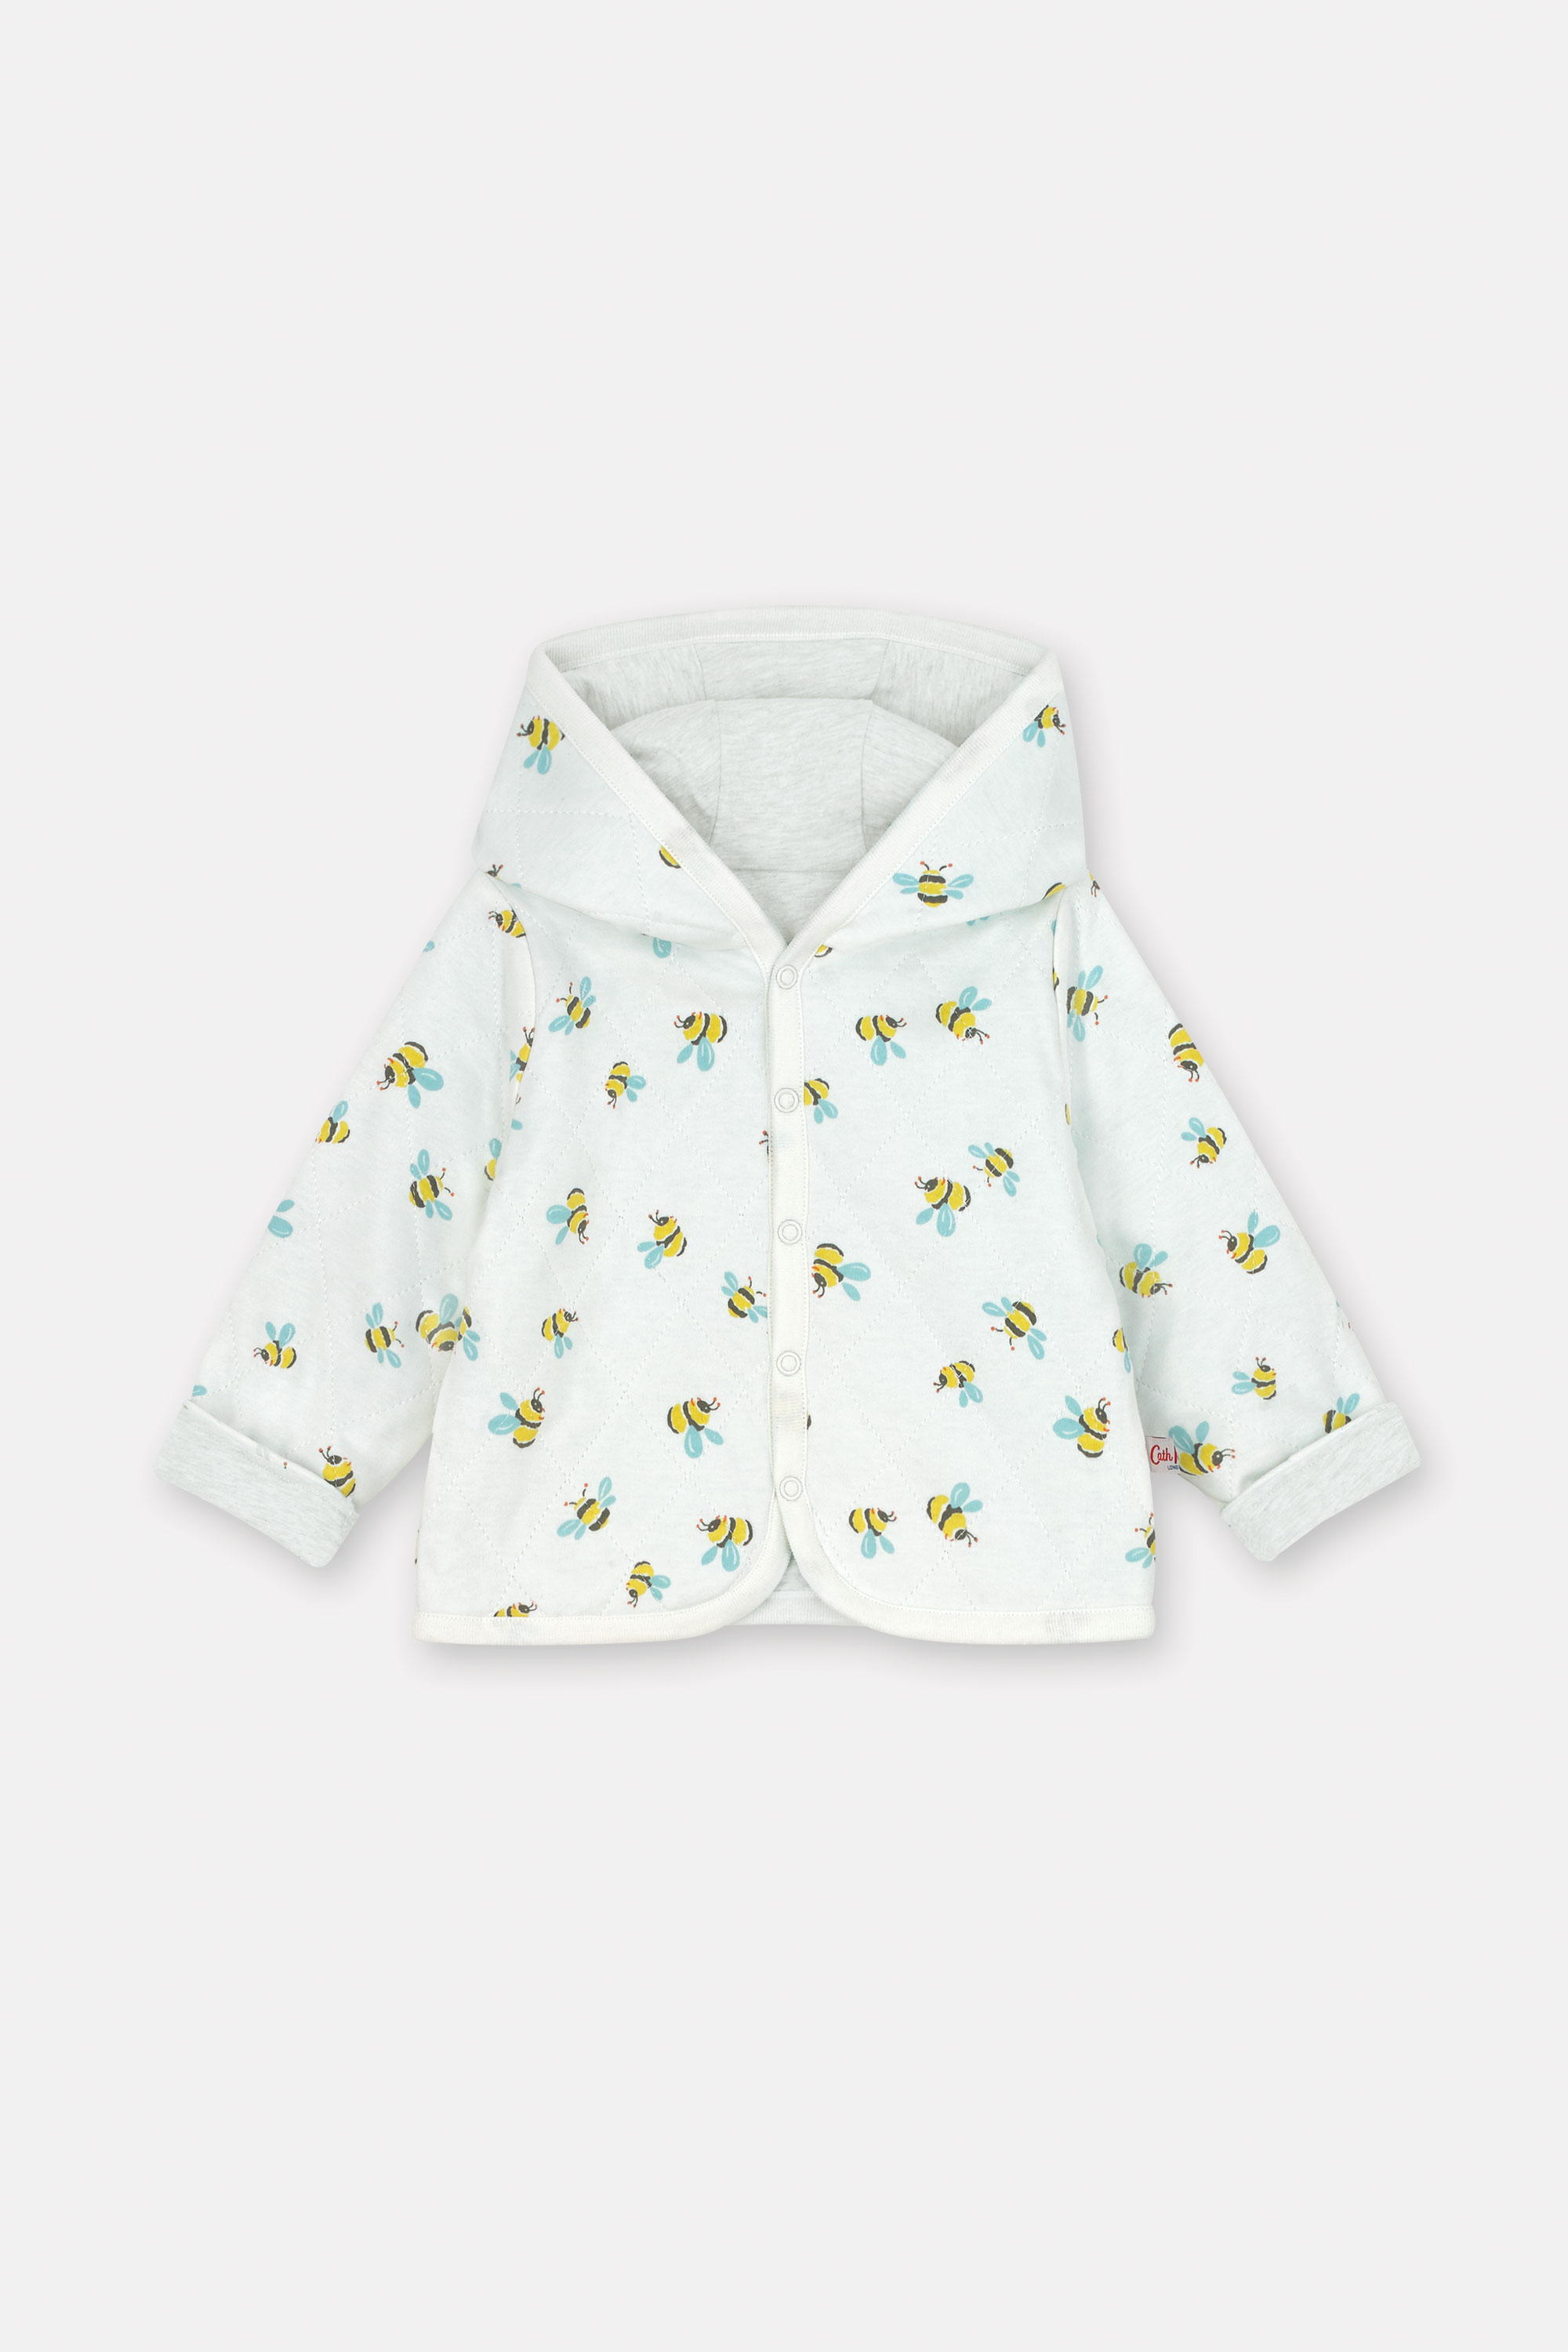 Cath Kidston Buzzy Bee Baby Quilted Hooded Jacket in Ivory, 6-9 Mo